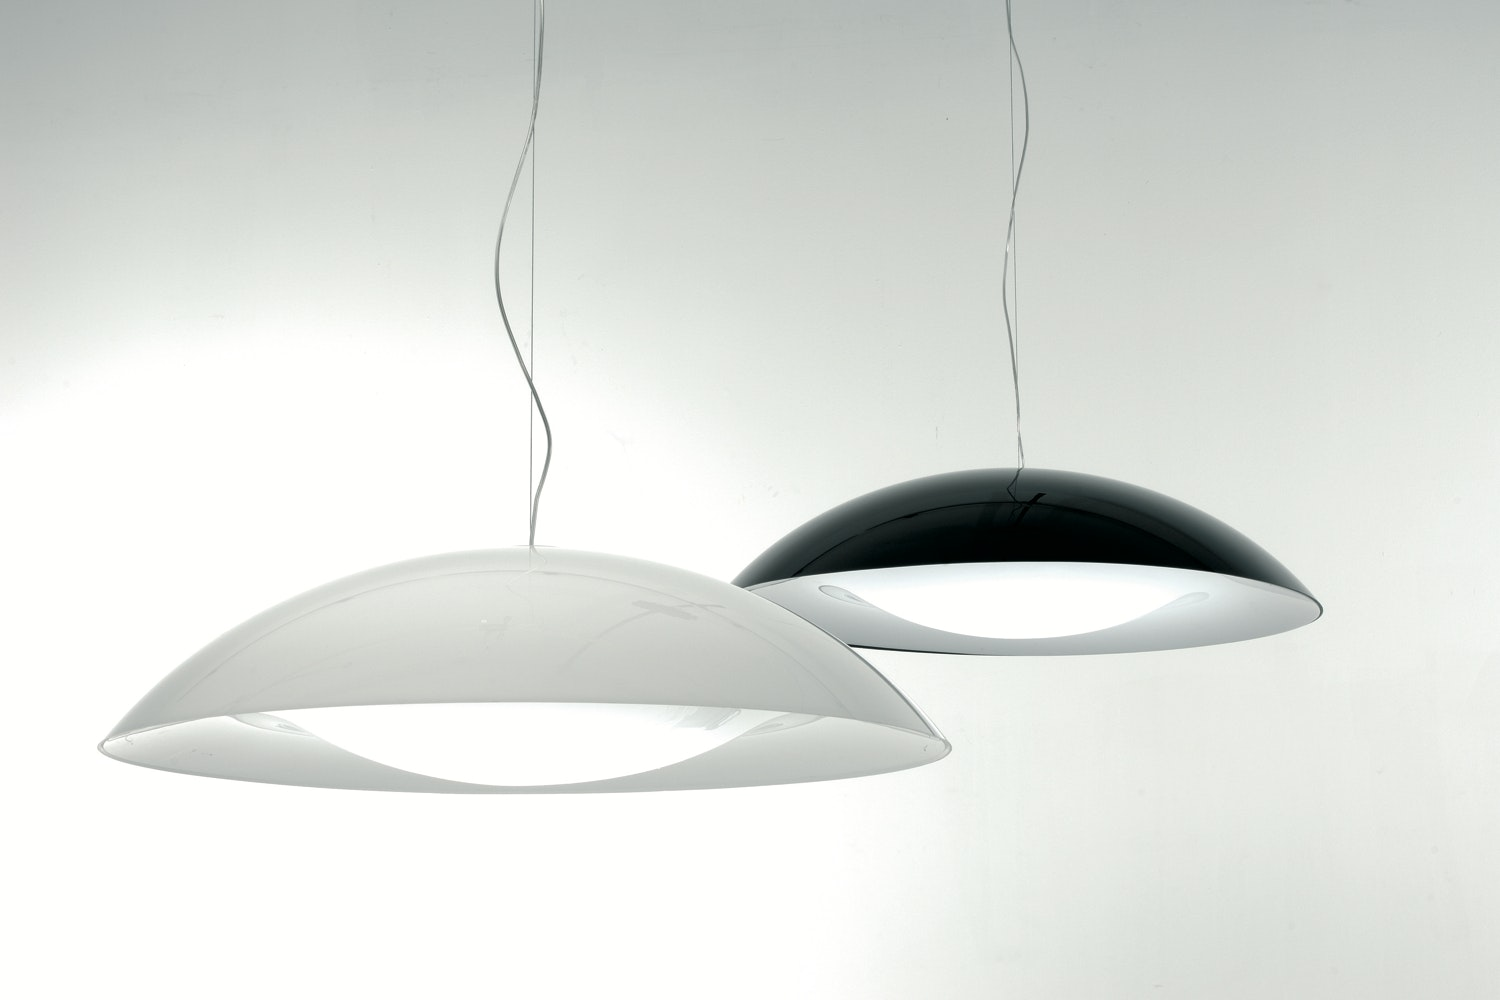 Neutra Suspension Lamp by Ferruccio Laviani for Kartell